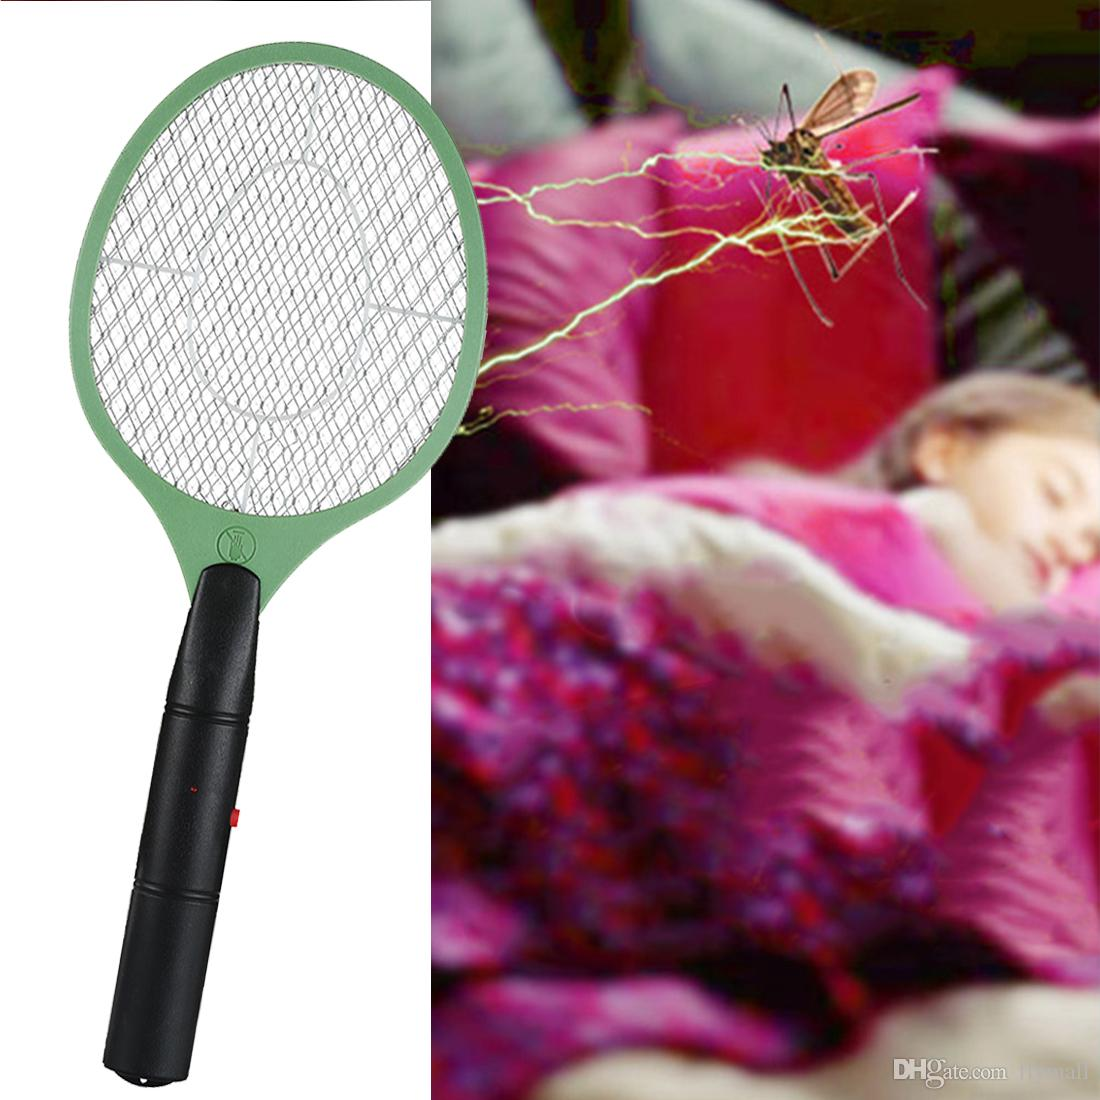 2018 2 Aa Batteries Operated Hand Racket Electric Mosquito Swatter Circuitboardinsectkillerjpg Insect Home Garden Pest Bug Fly Zapper Killer From Flymall